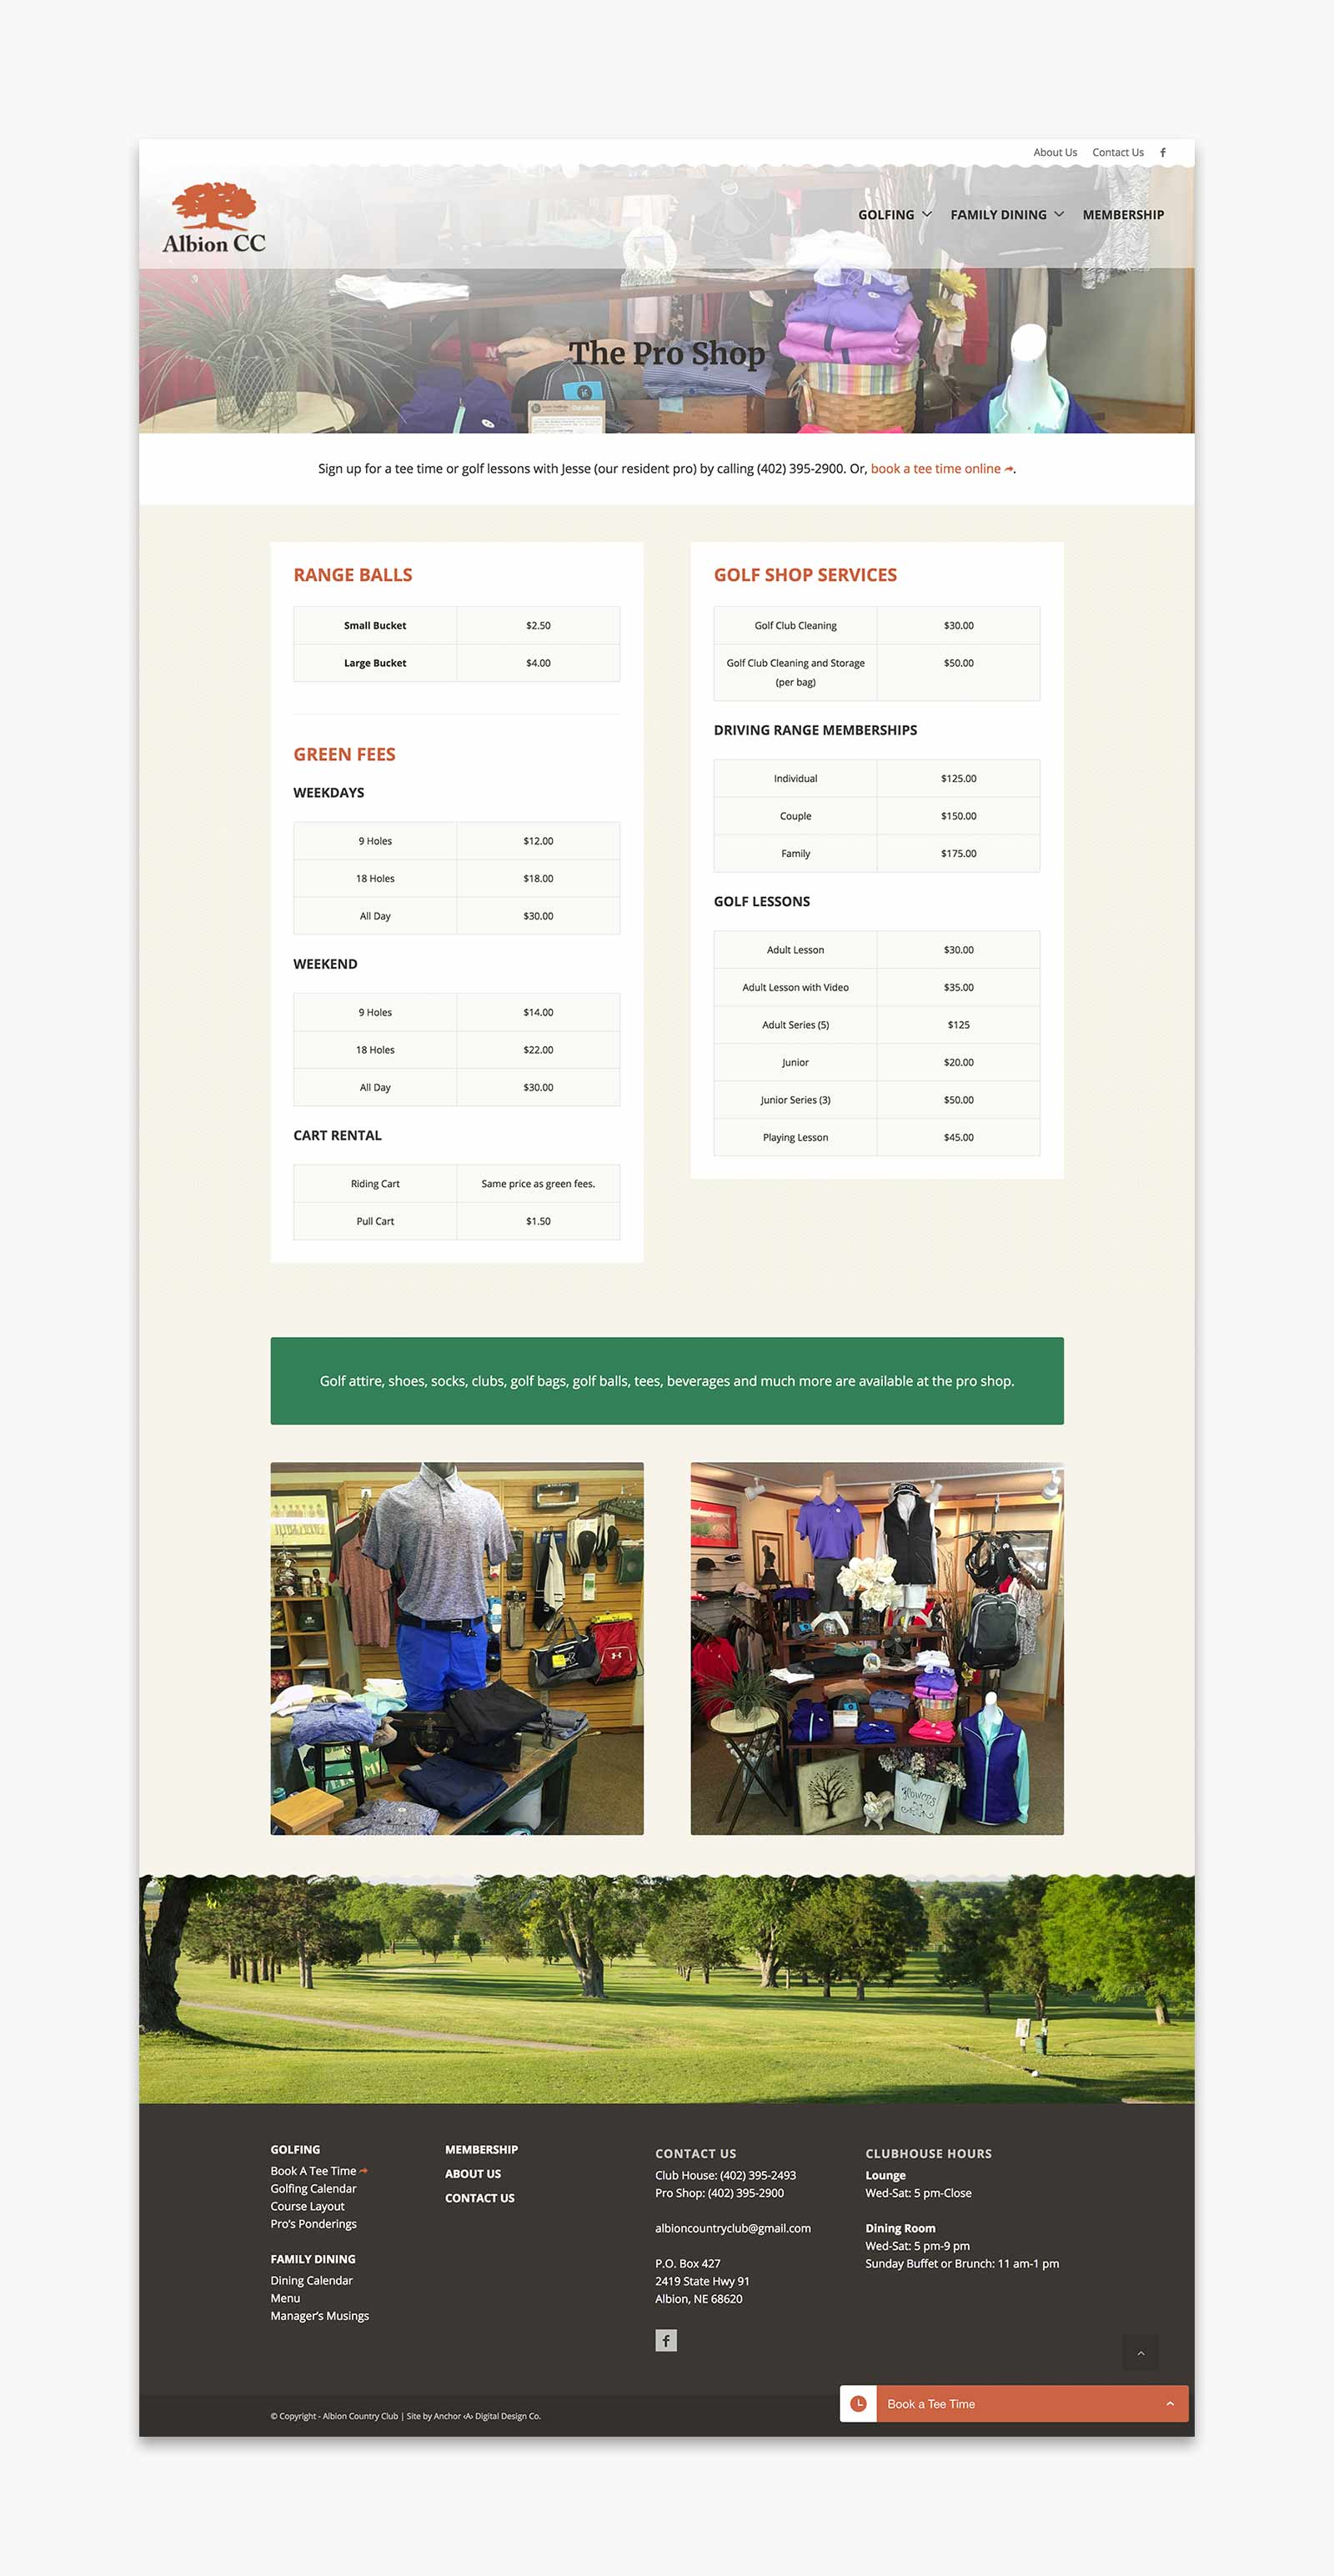 Albion Country Club - The Pro Shop website page layout